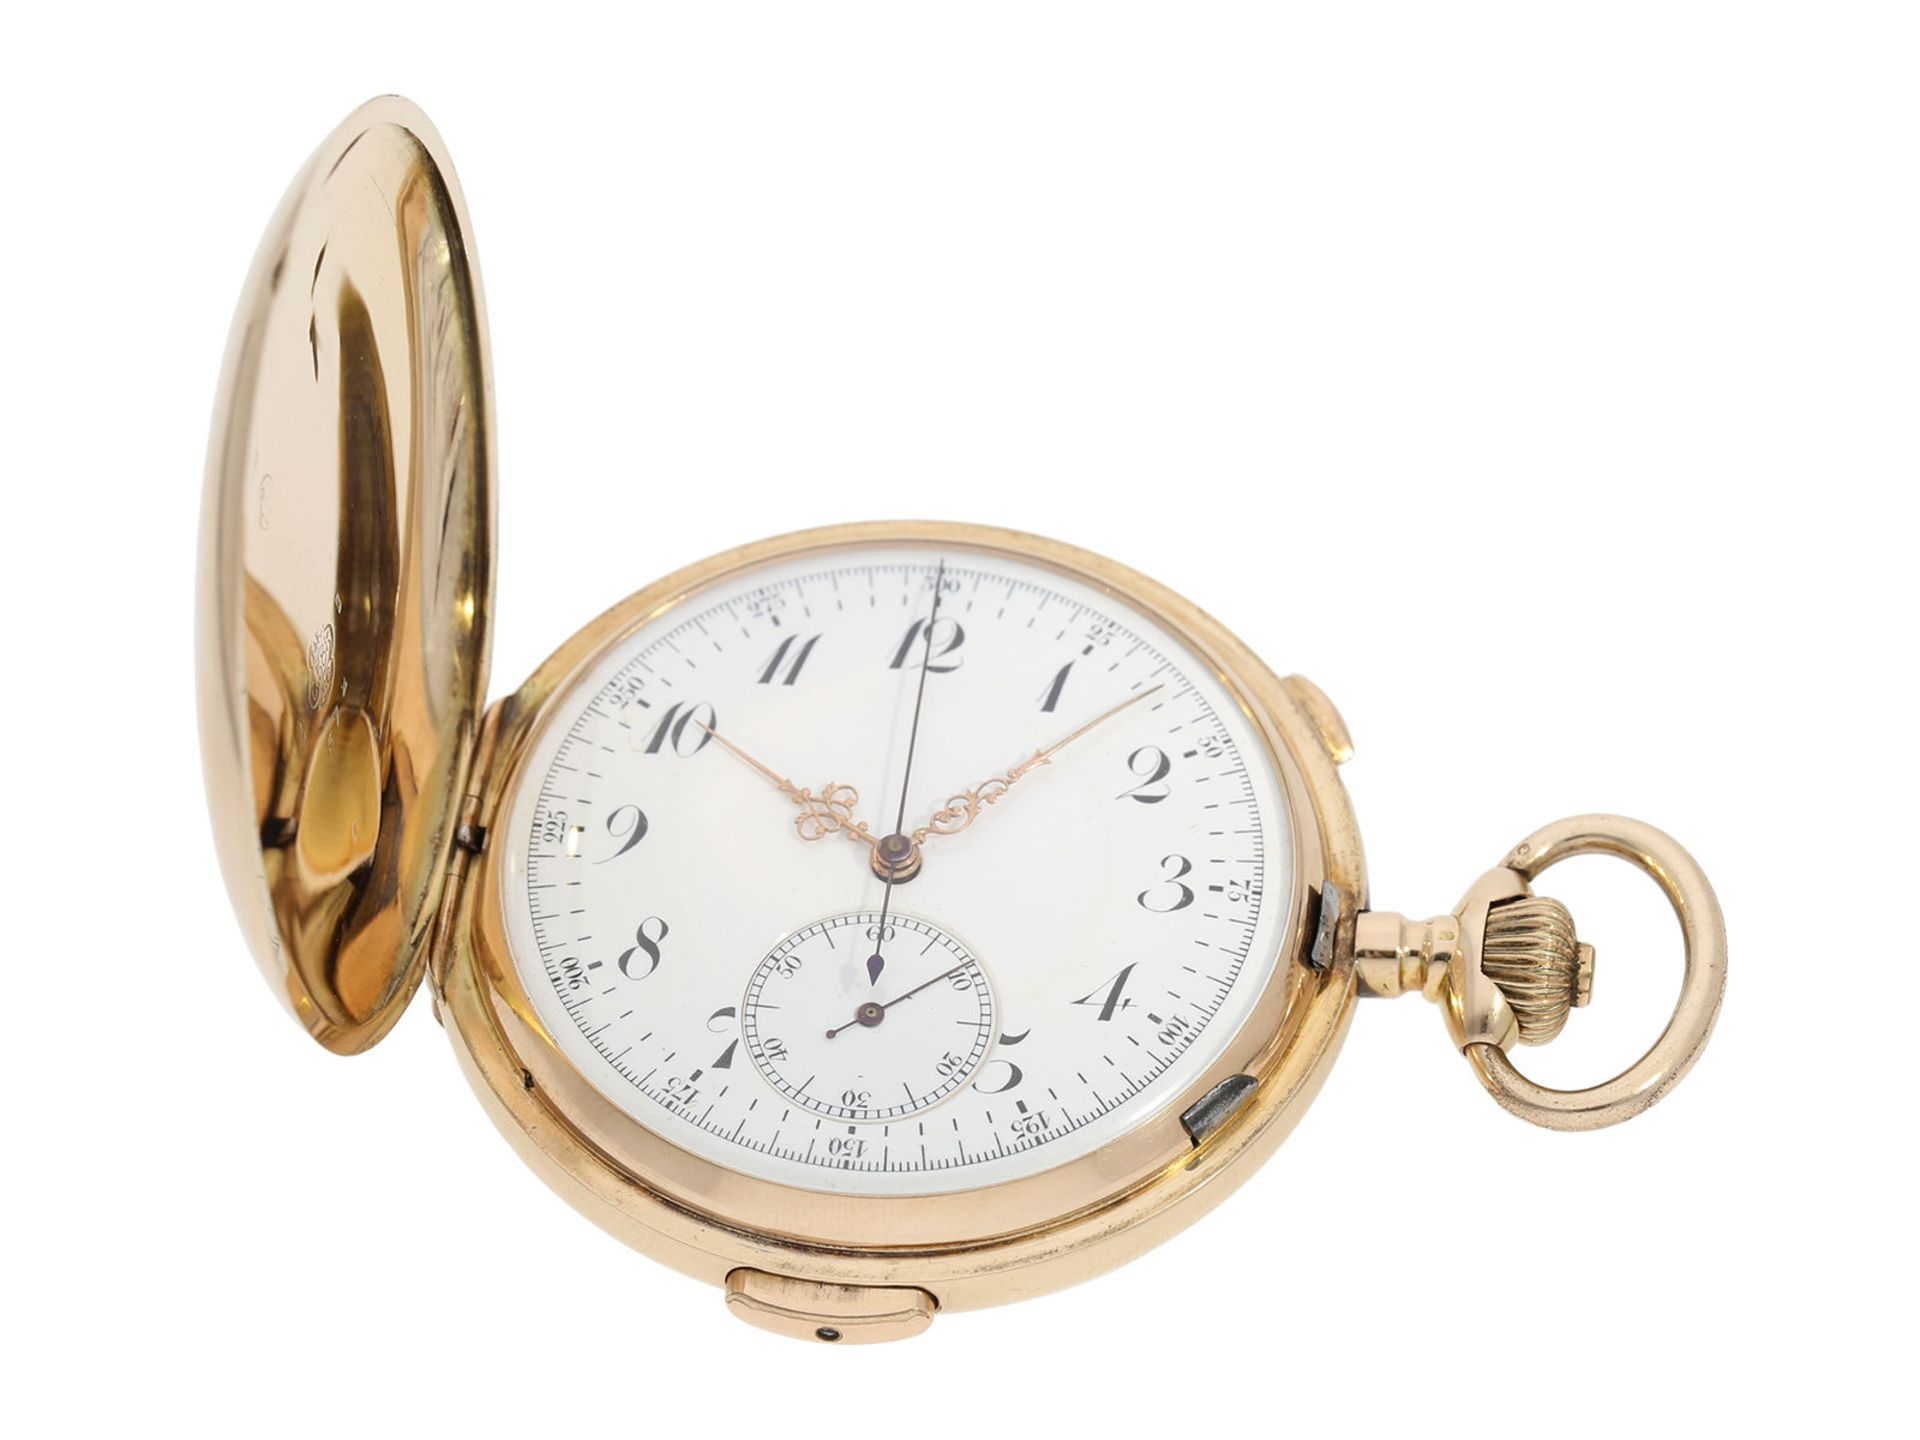 Pocket watch: large Swiss gold hunting case repeater with chronograph, brand Invicta, No. 77372, ca. - Bild 2 aus 8